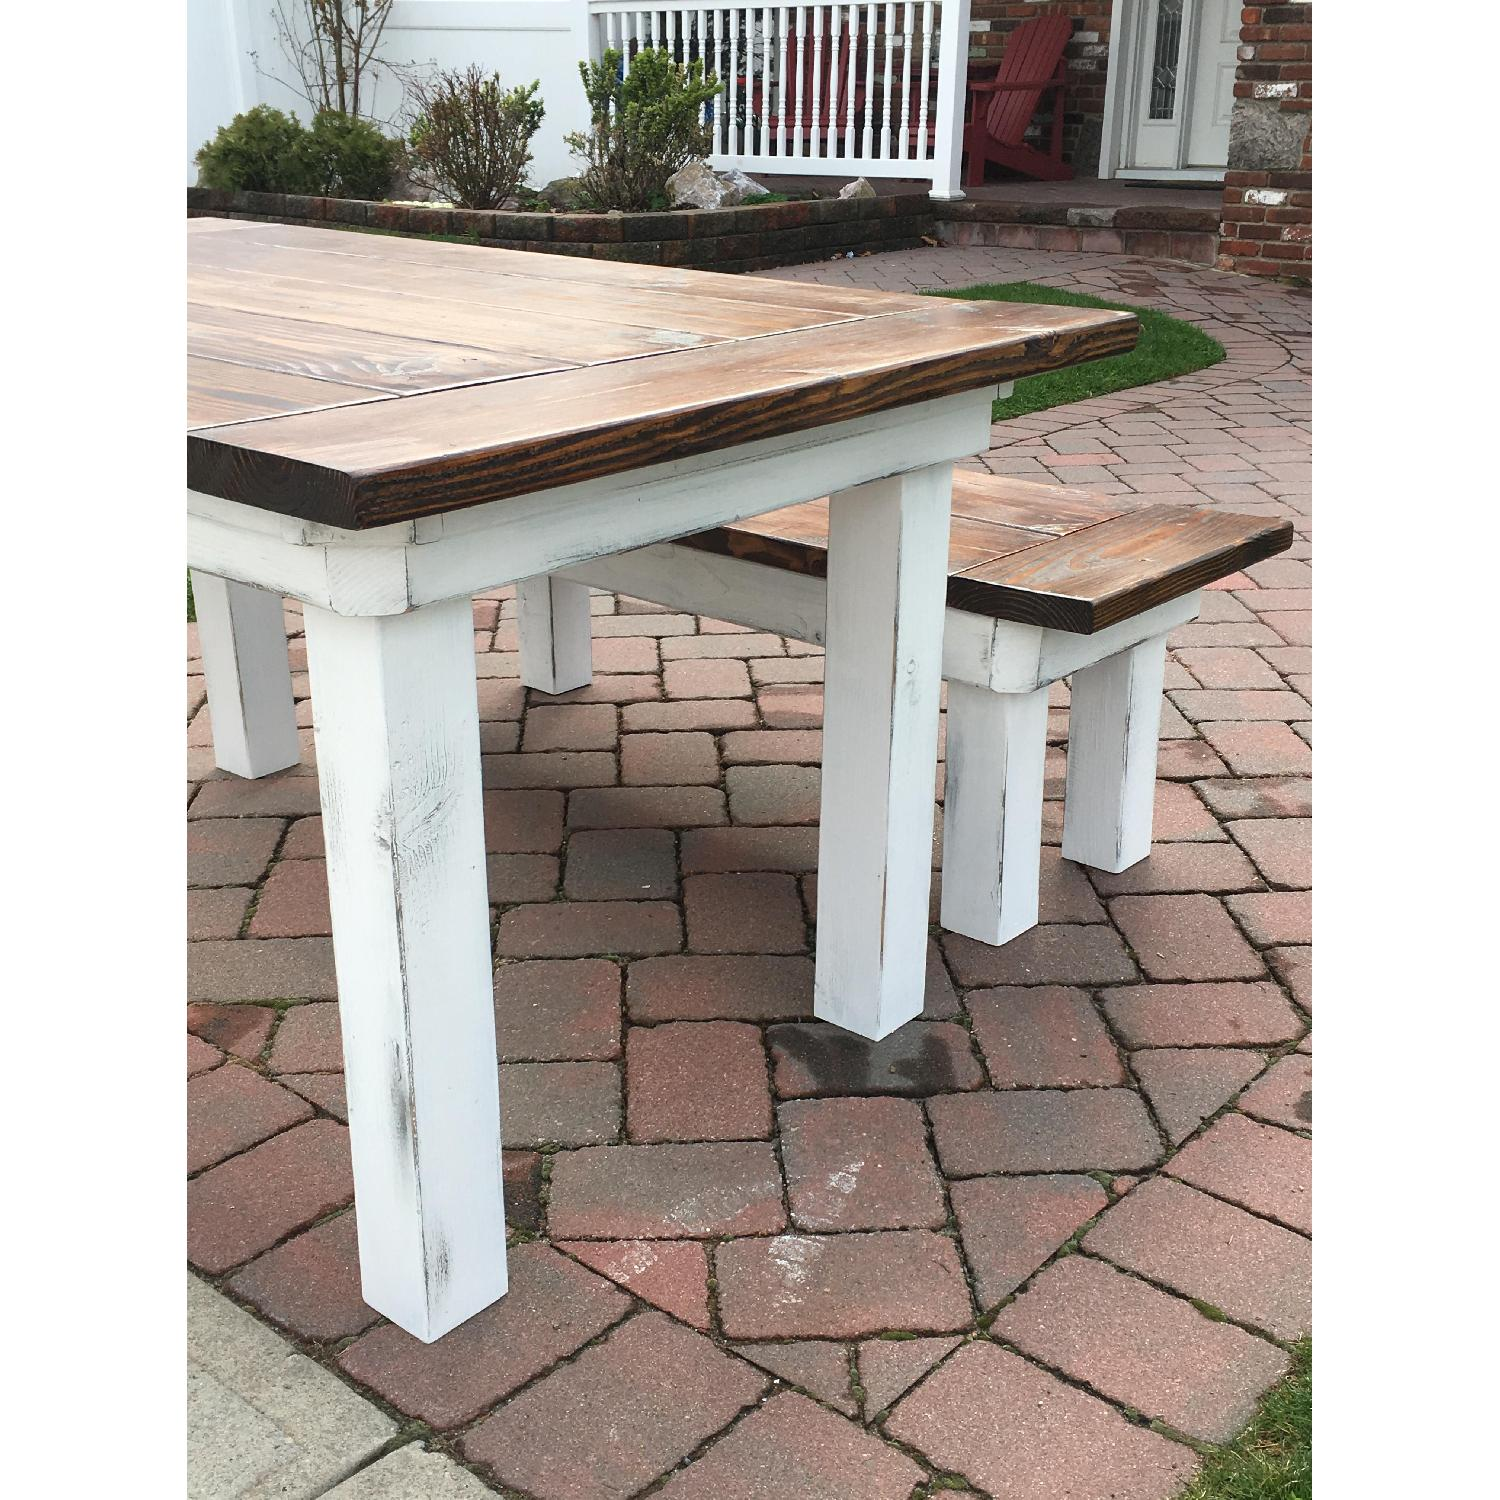 Rustic Farm Table w/ 1 Bench - image-4